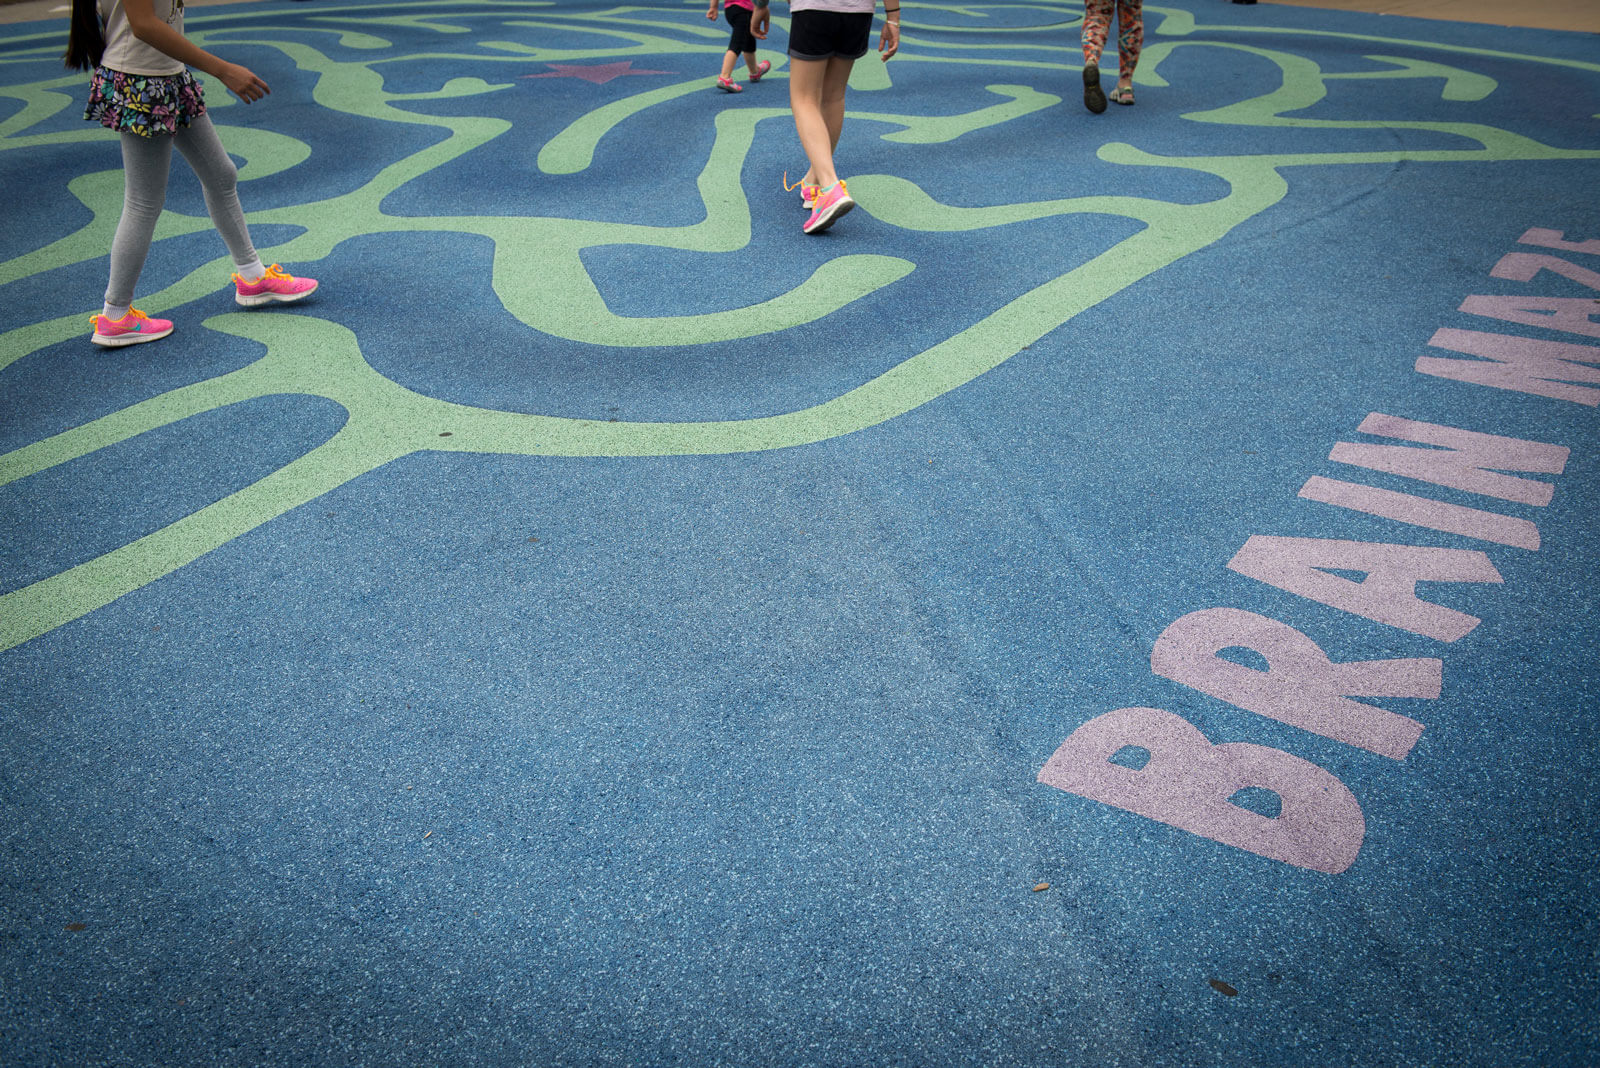 feet running through maze painted on concrete